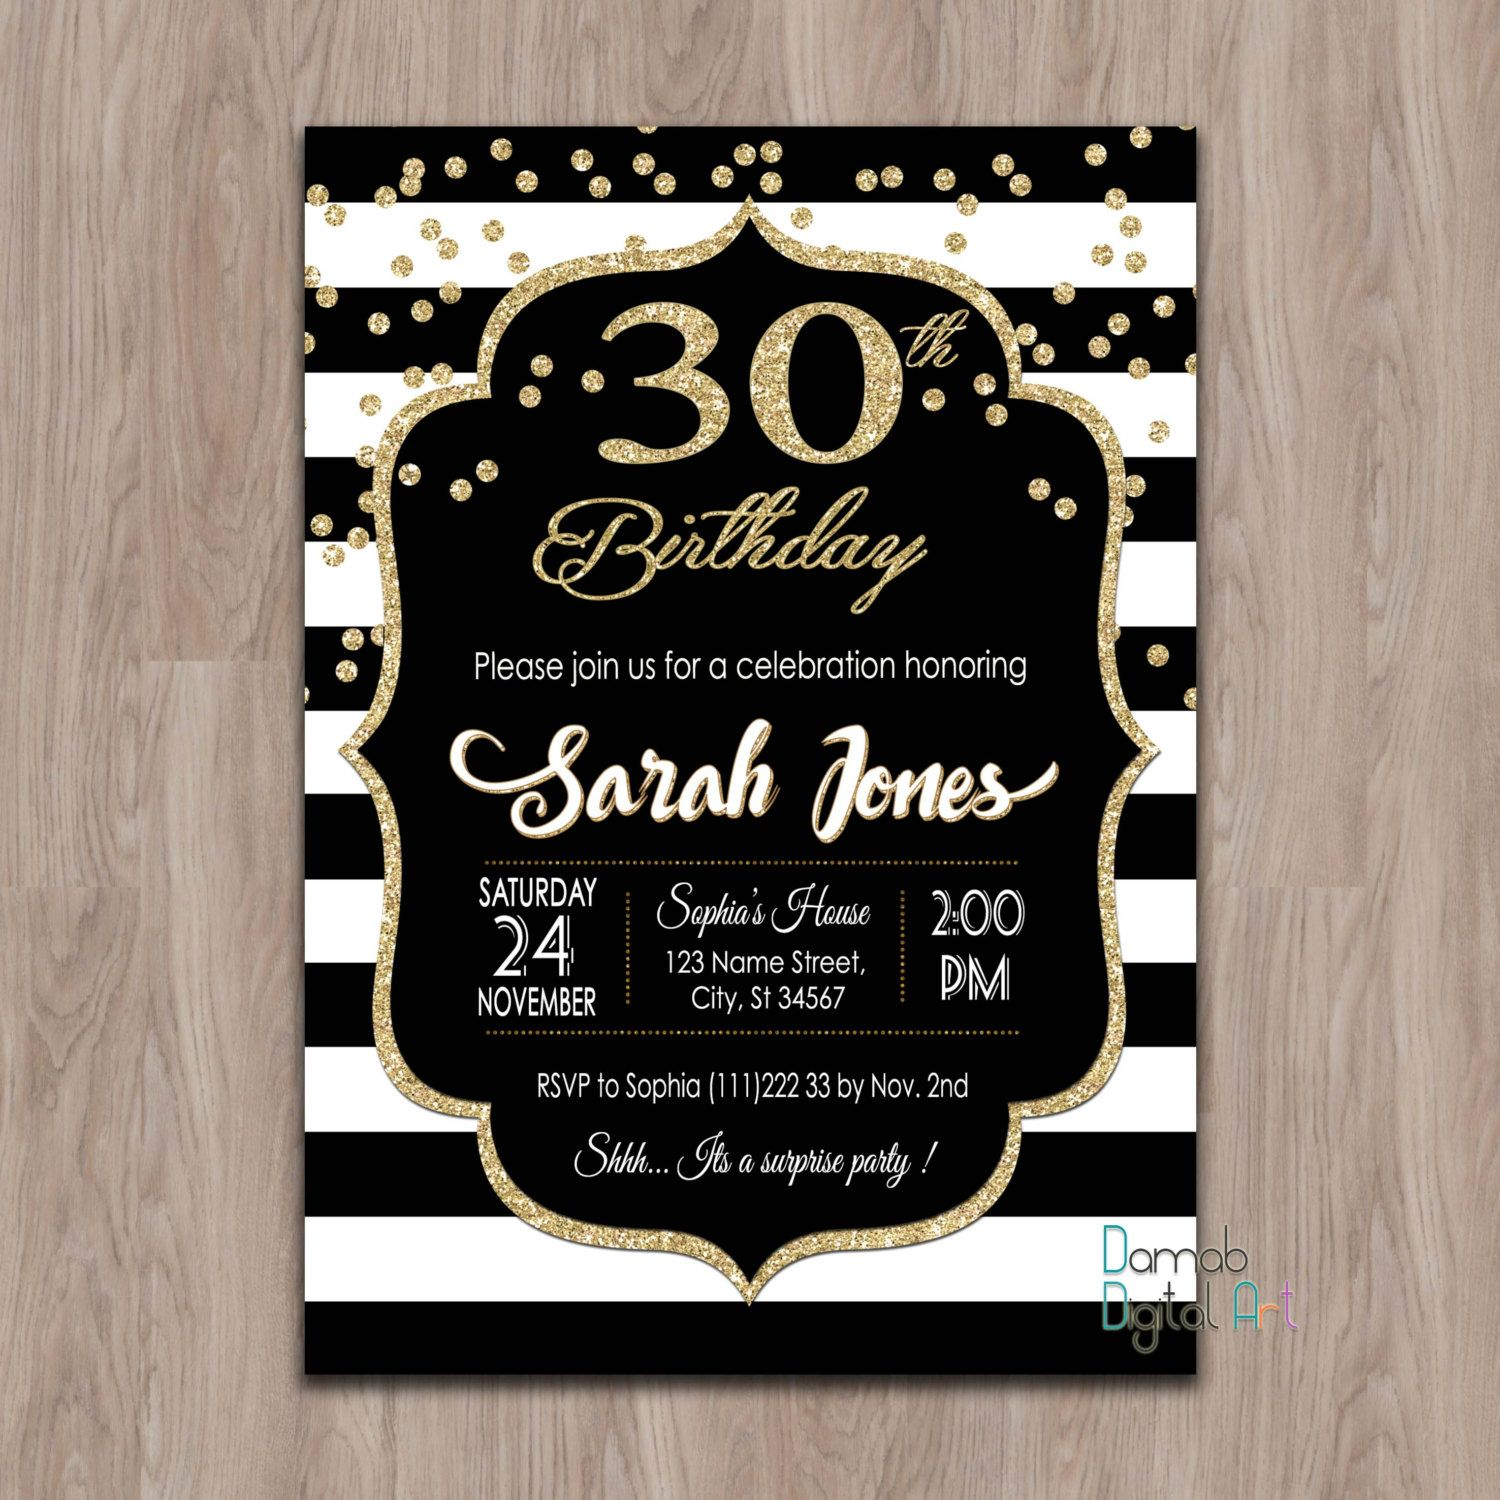 30th birthday invitation 30th birthday invites 40th 50th shonas 30th birthday invitation 30th birthday invites 40th 50th filmwisefo